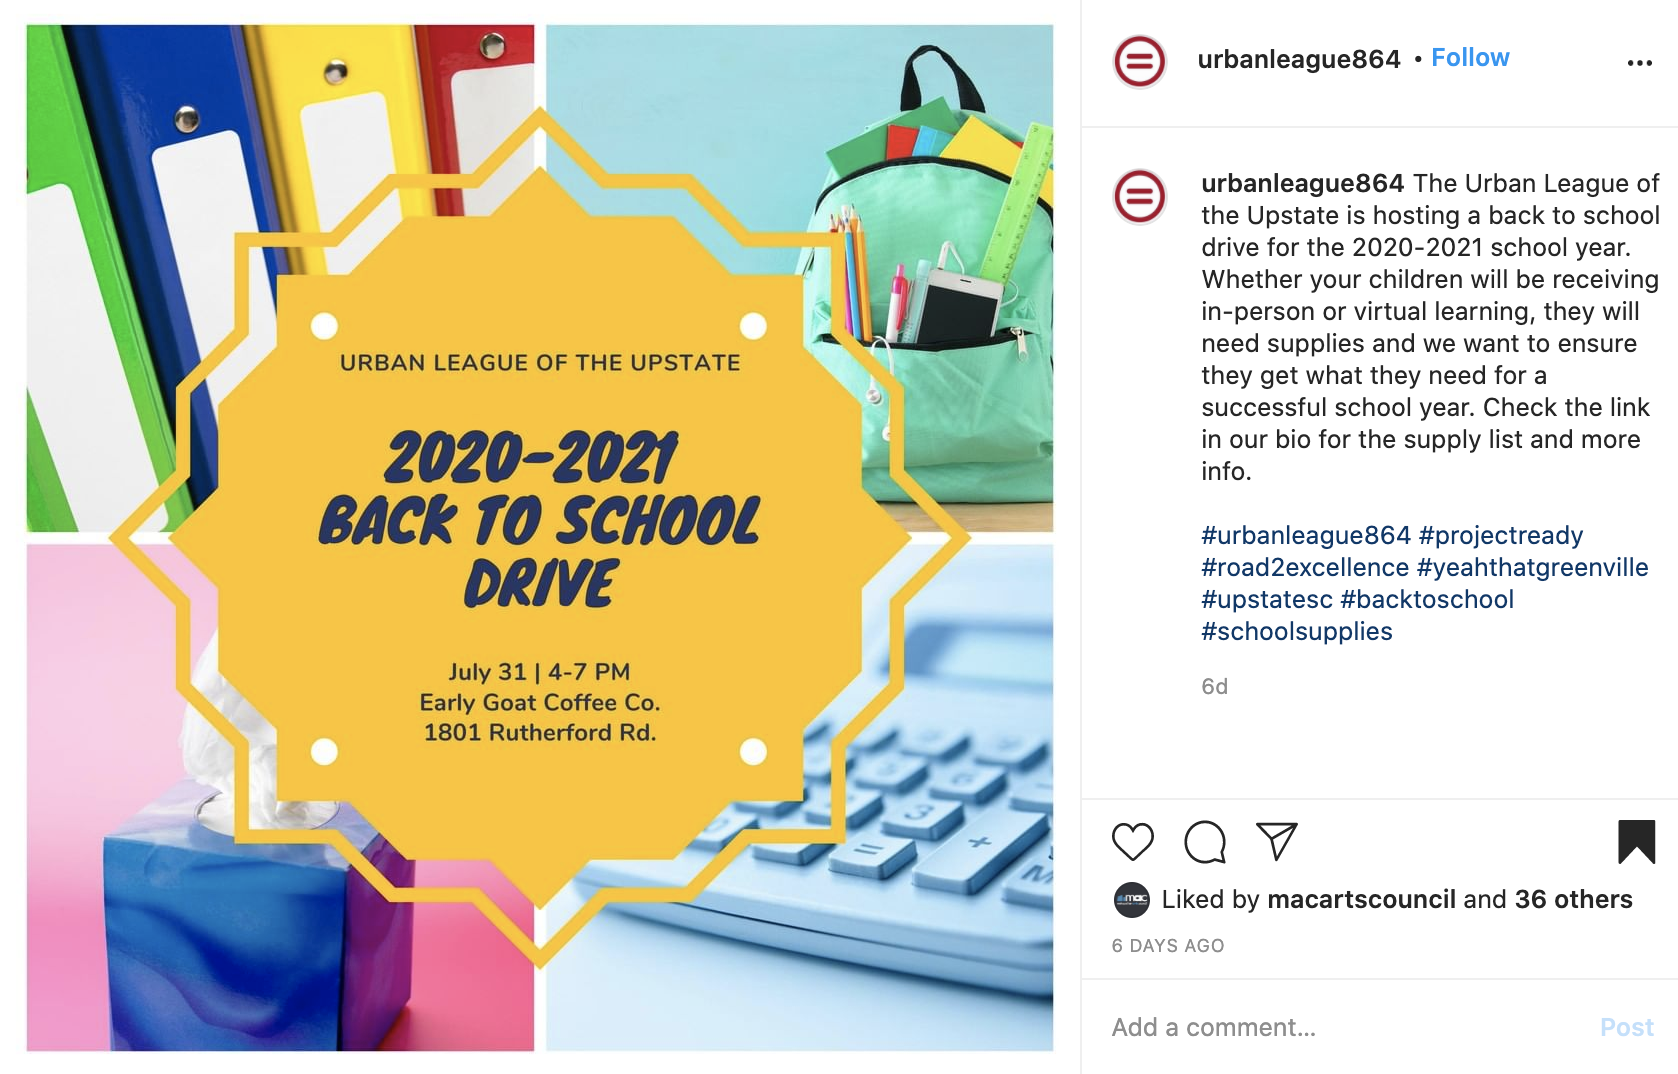 The Urban League of the Upstate Back to School Drive